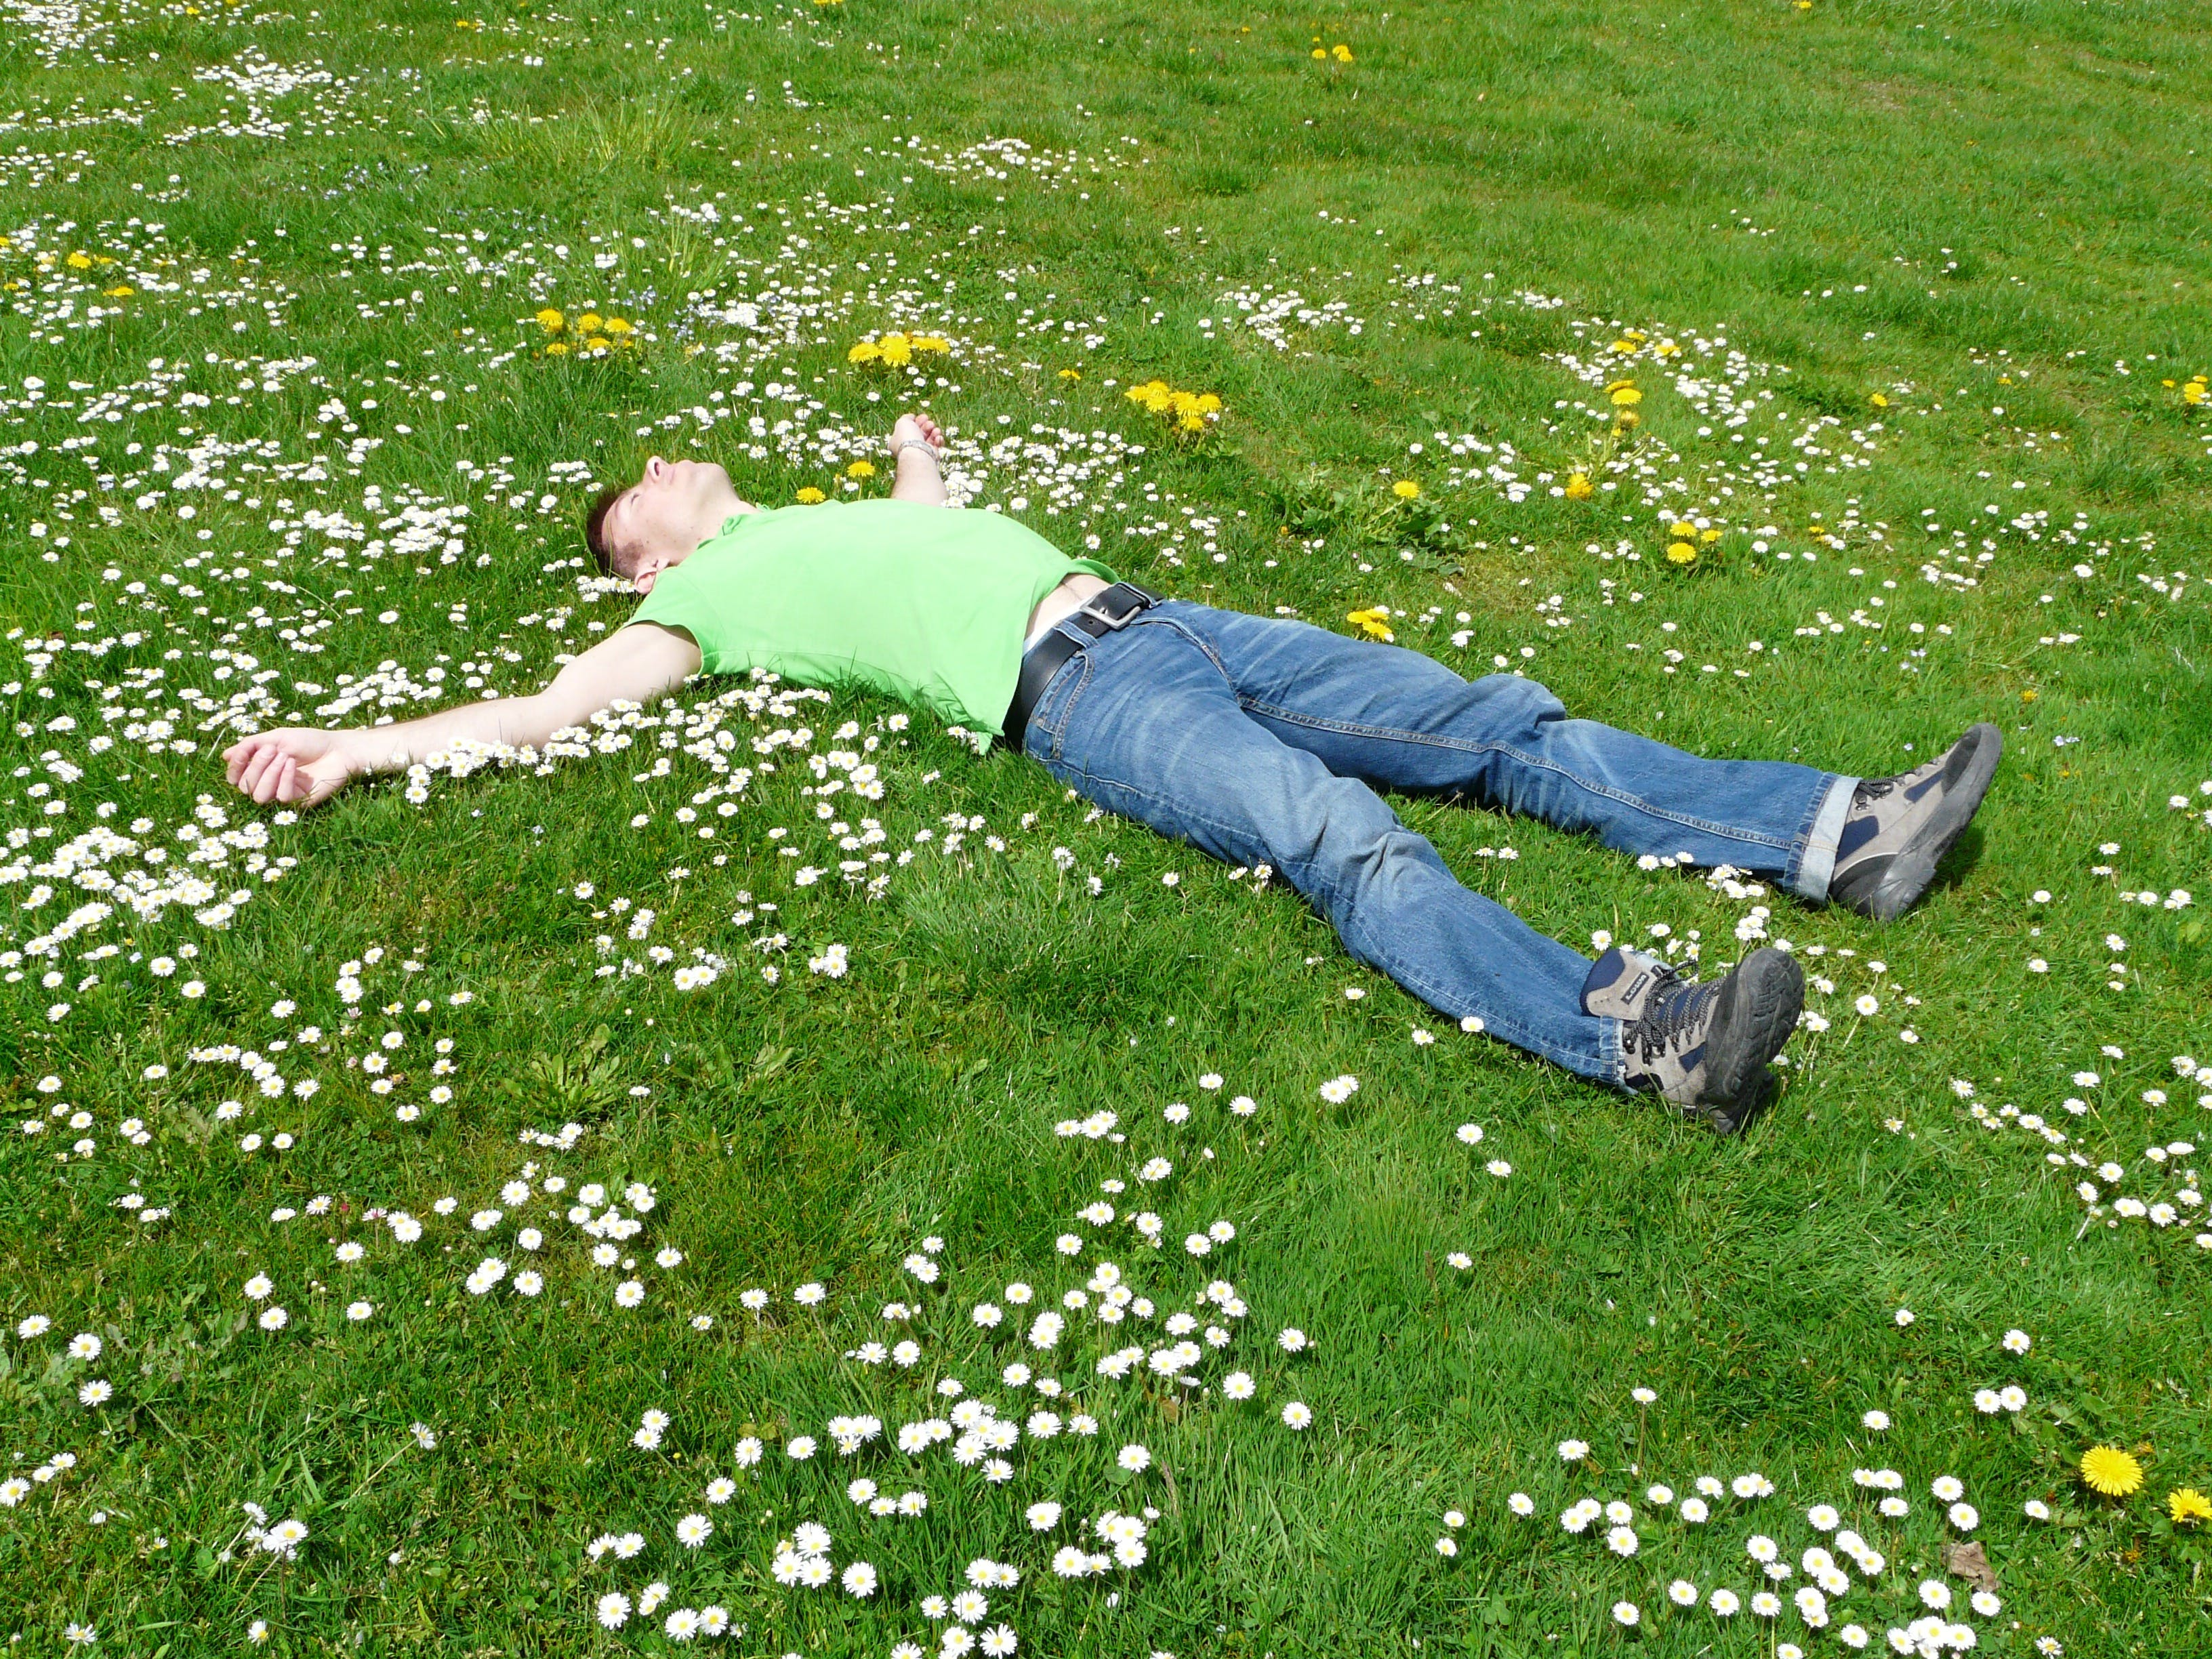 High Angle View of Lying Down on Grass